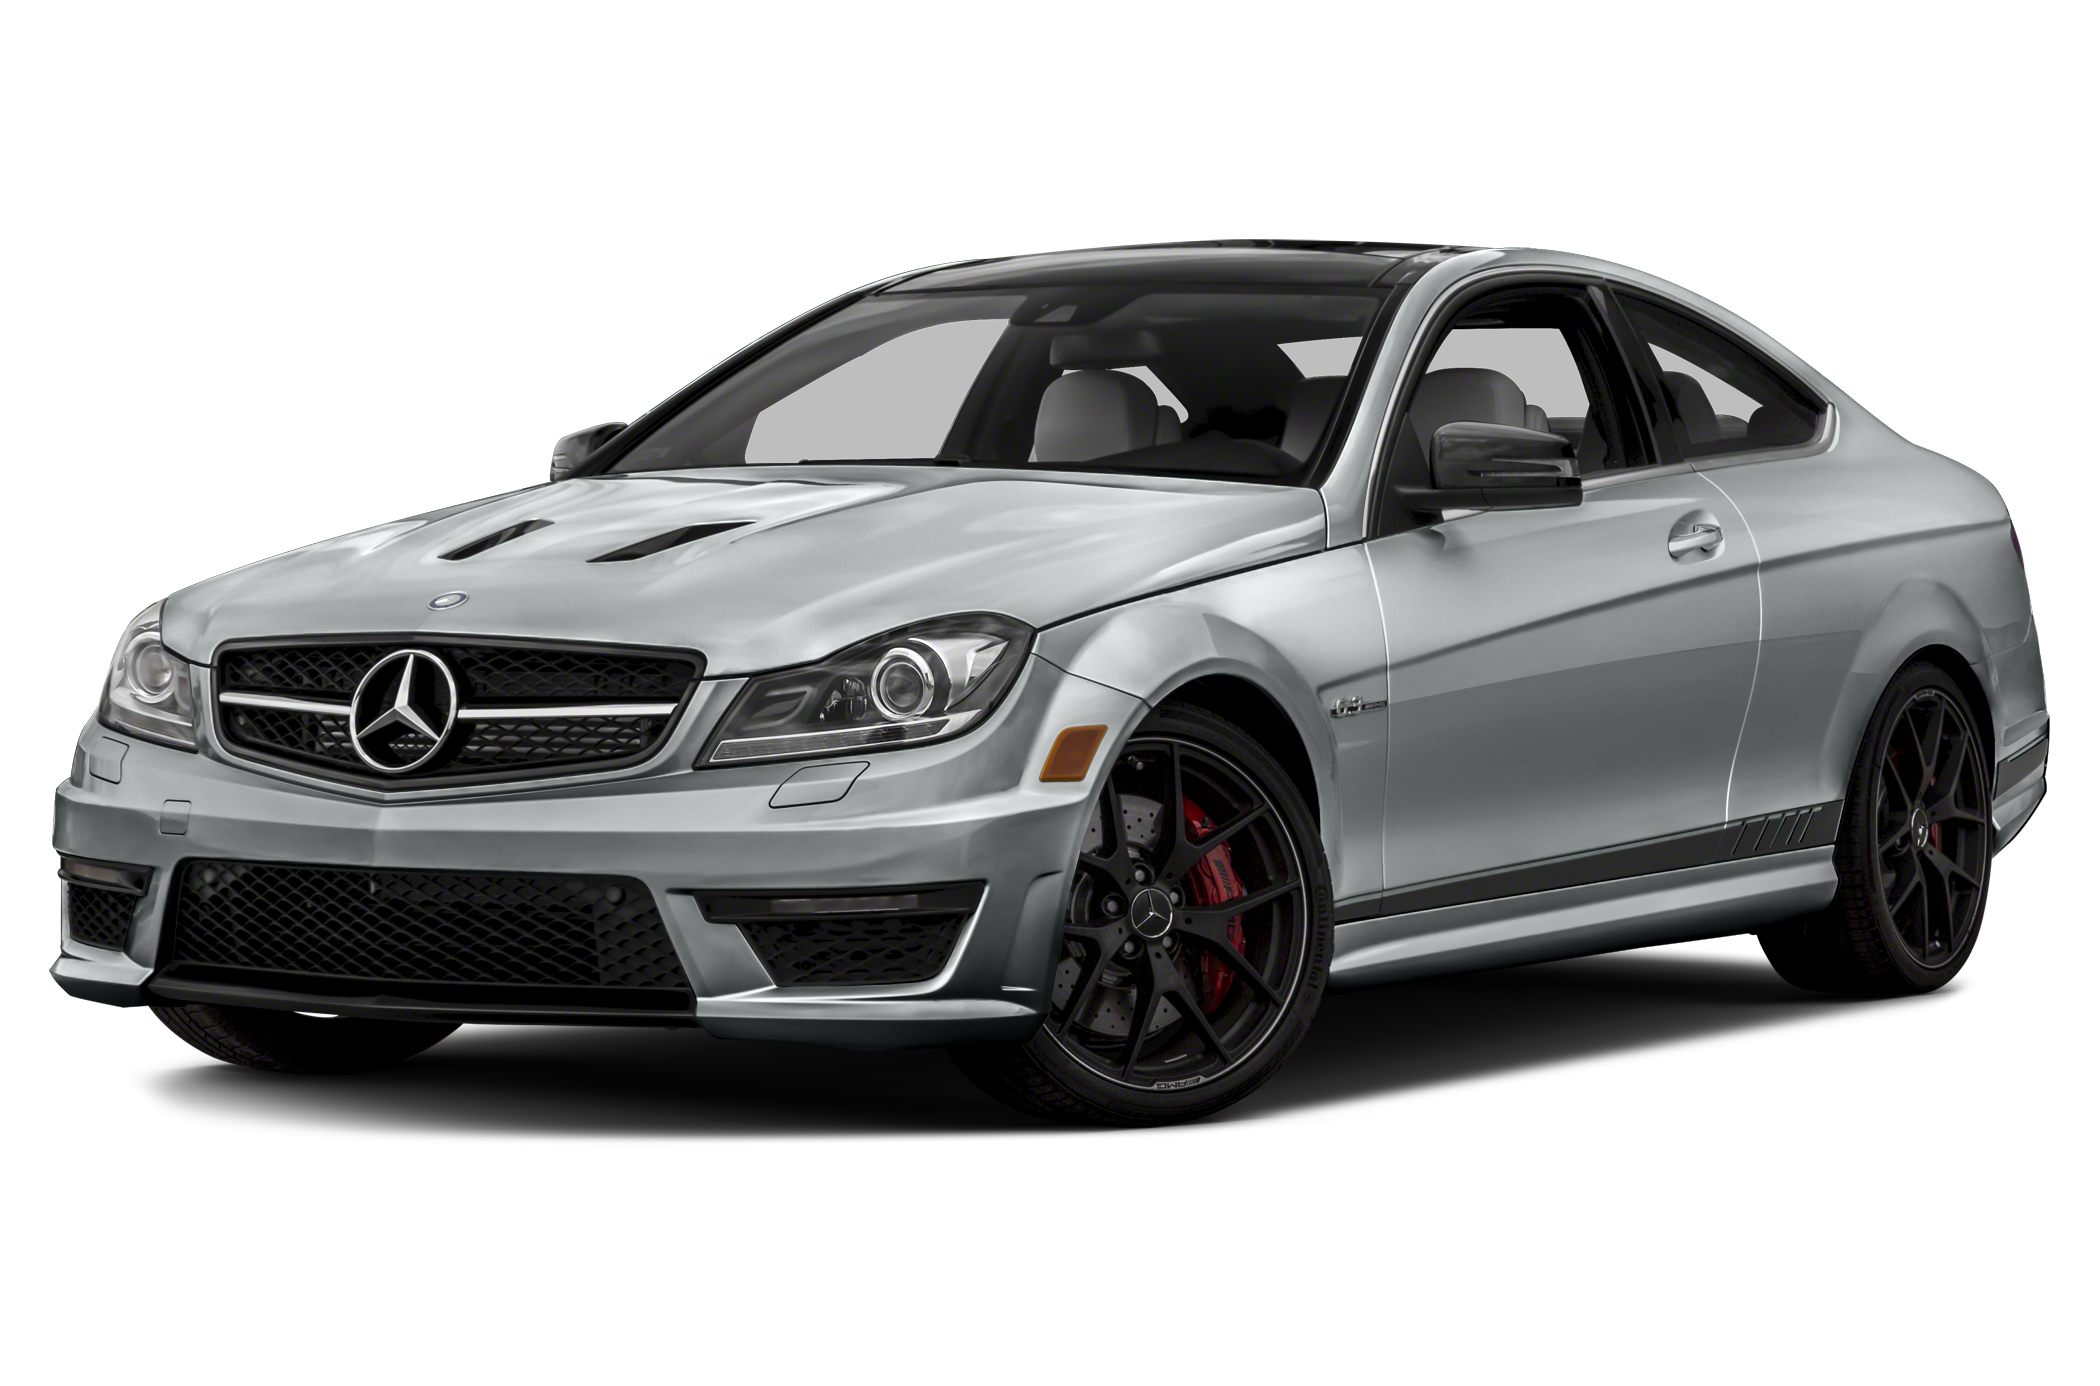 2015 Mercedes Benz C63 Amg Styles Features Highlights